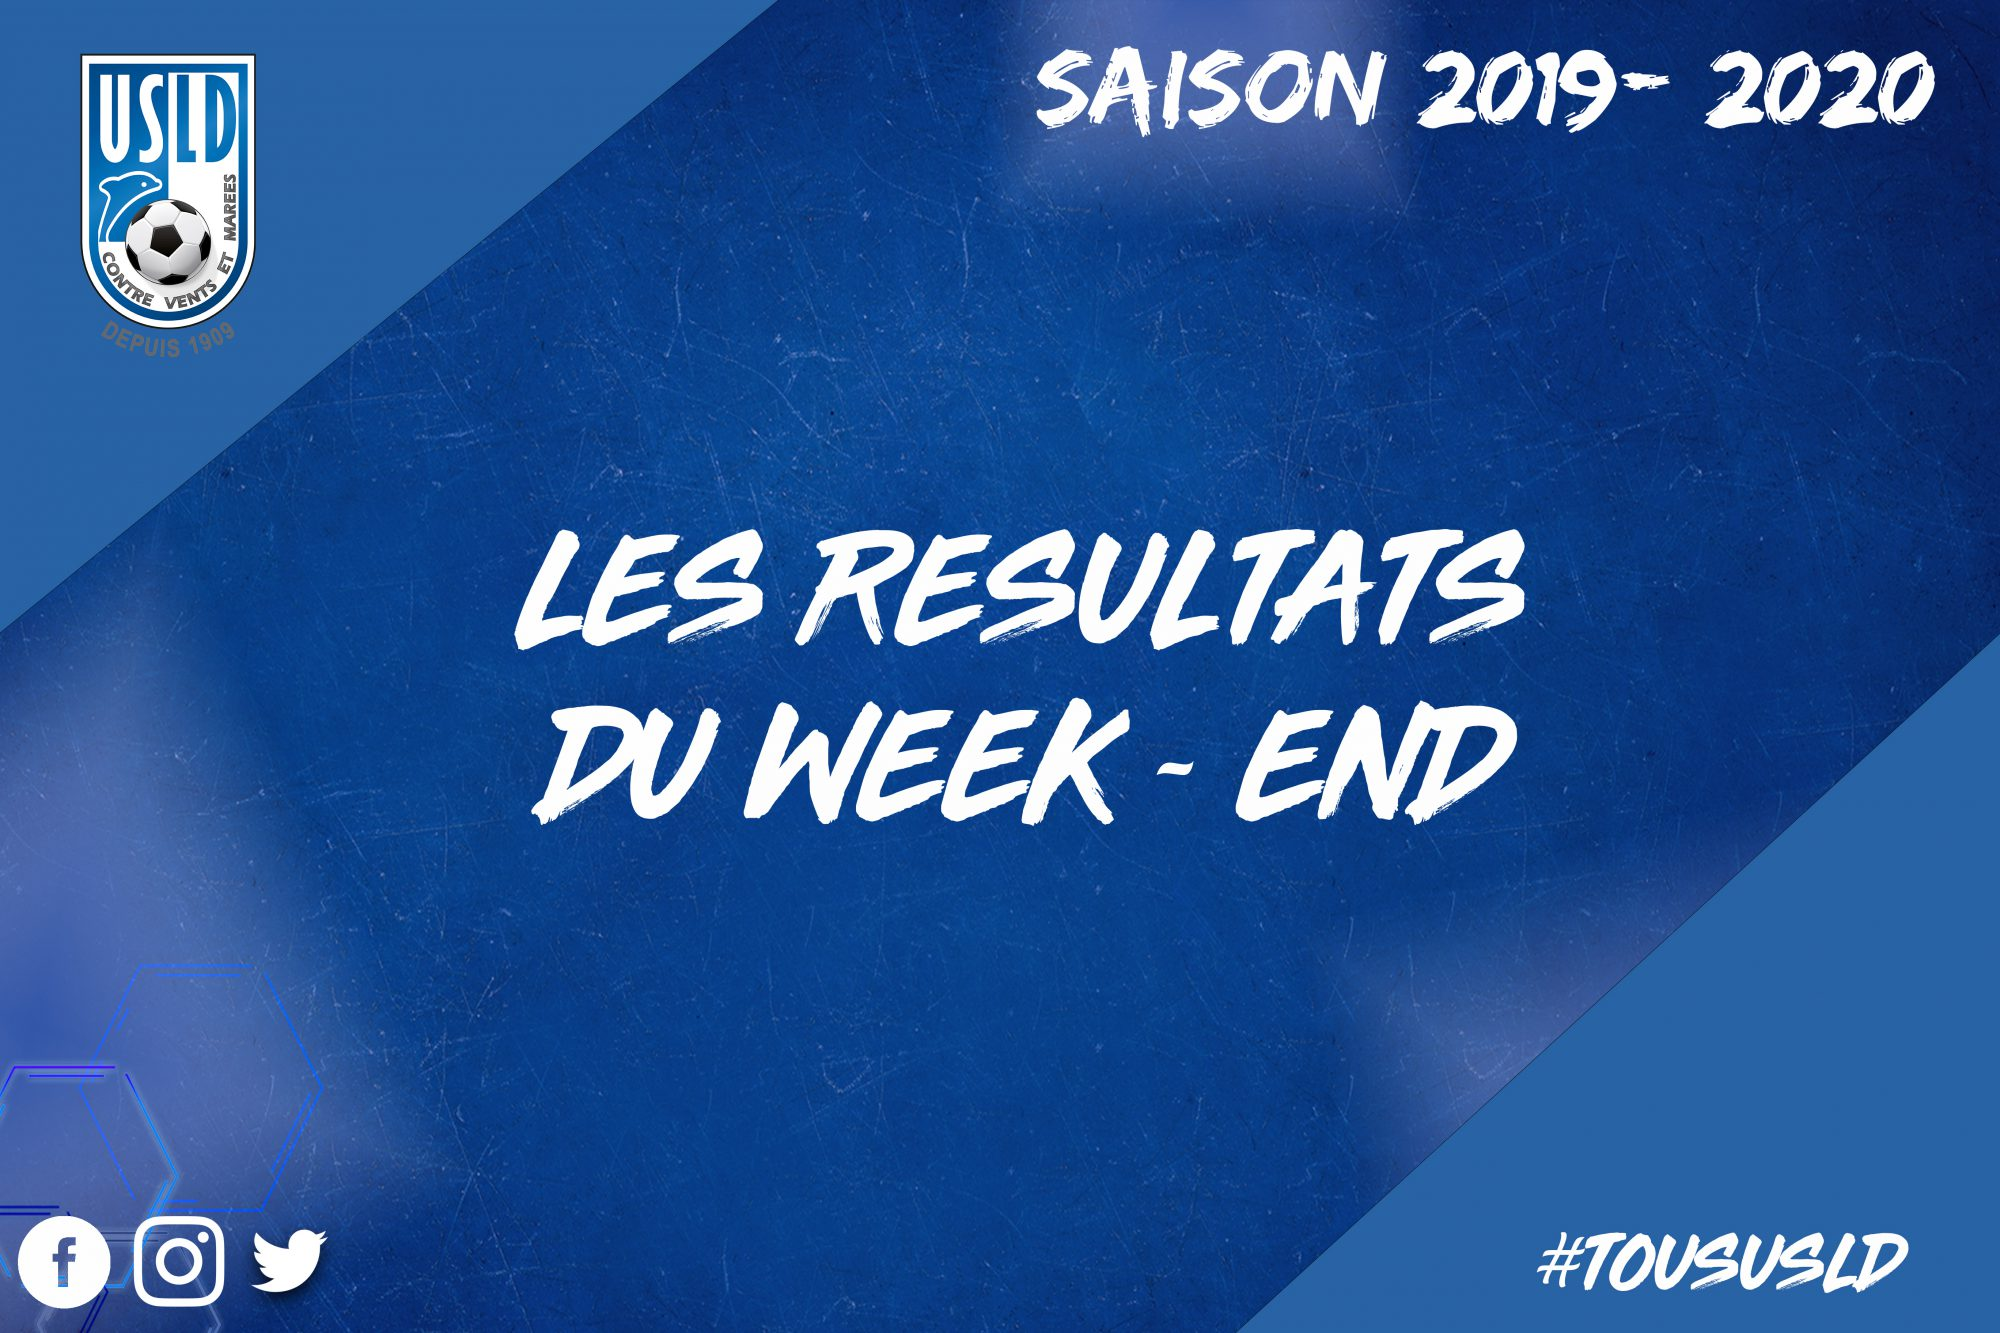 résultats week-end